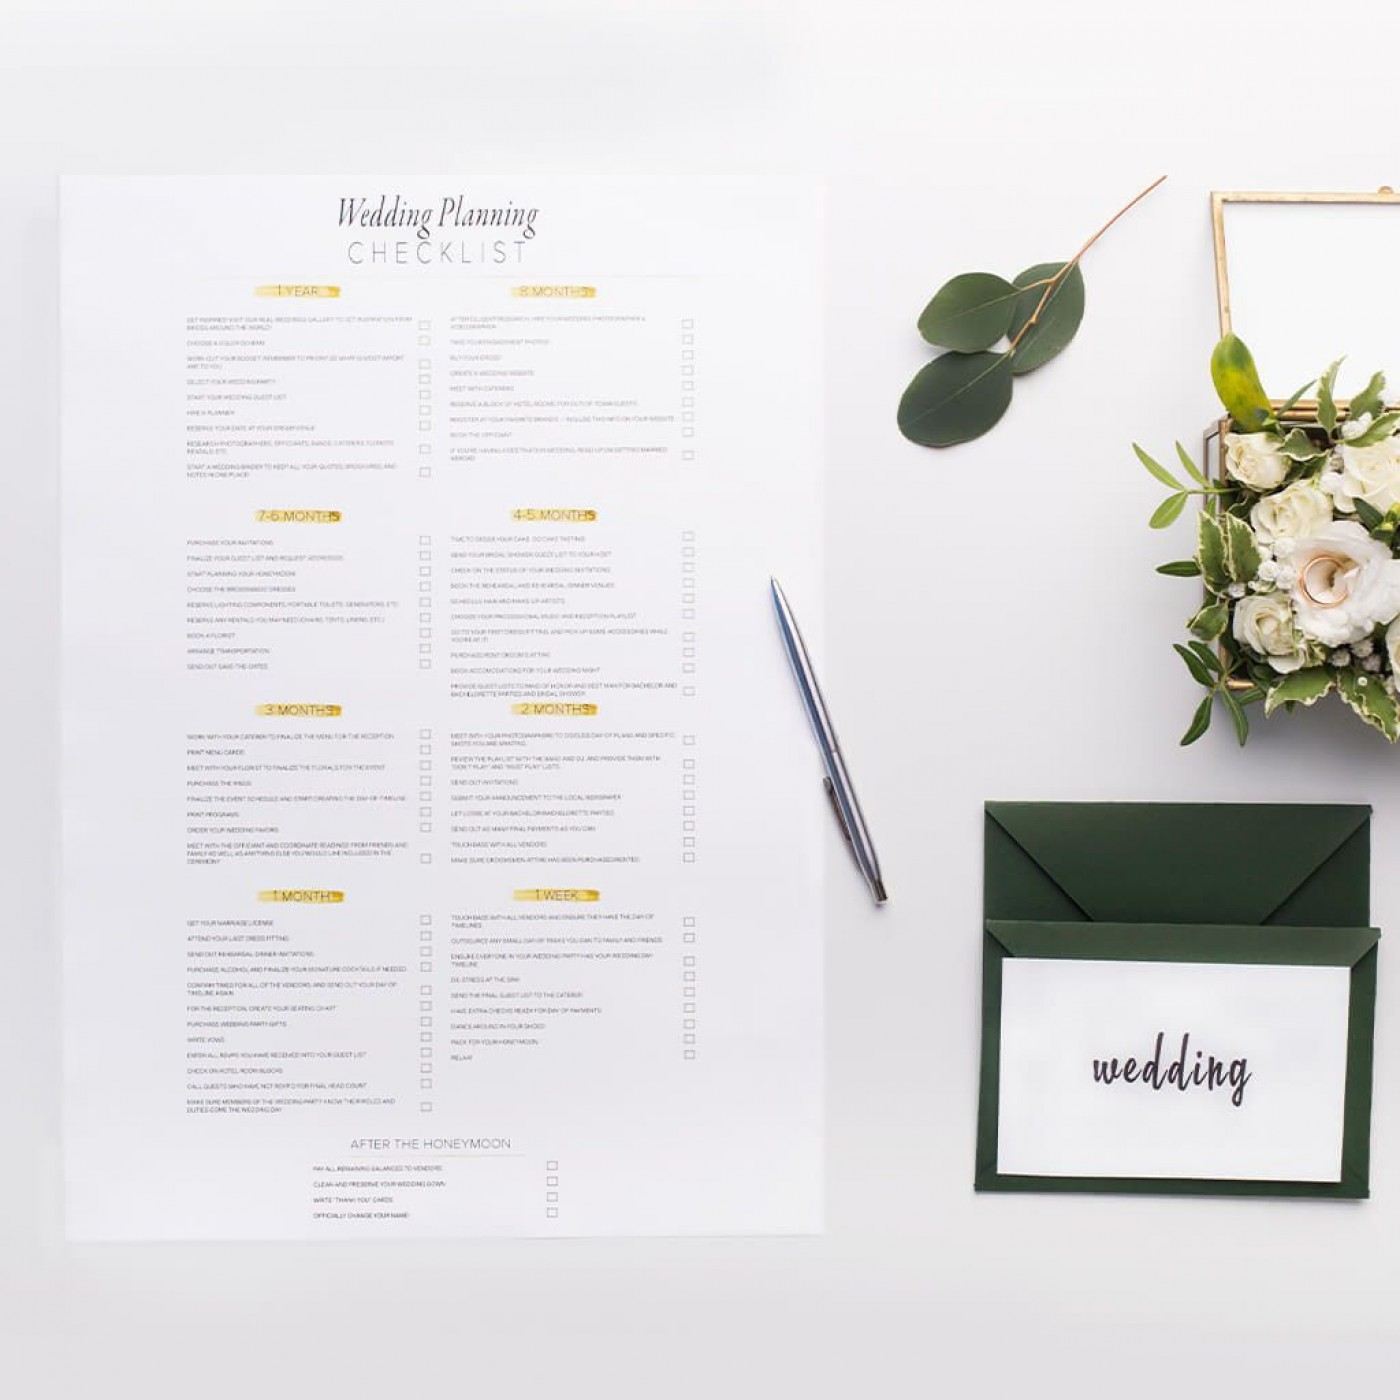 007 Frightening Wedding Timeline For Guest Template Free Sample  Download1400